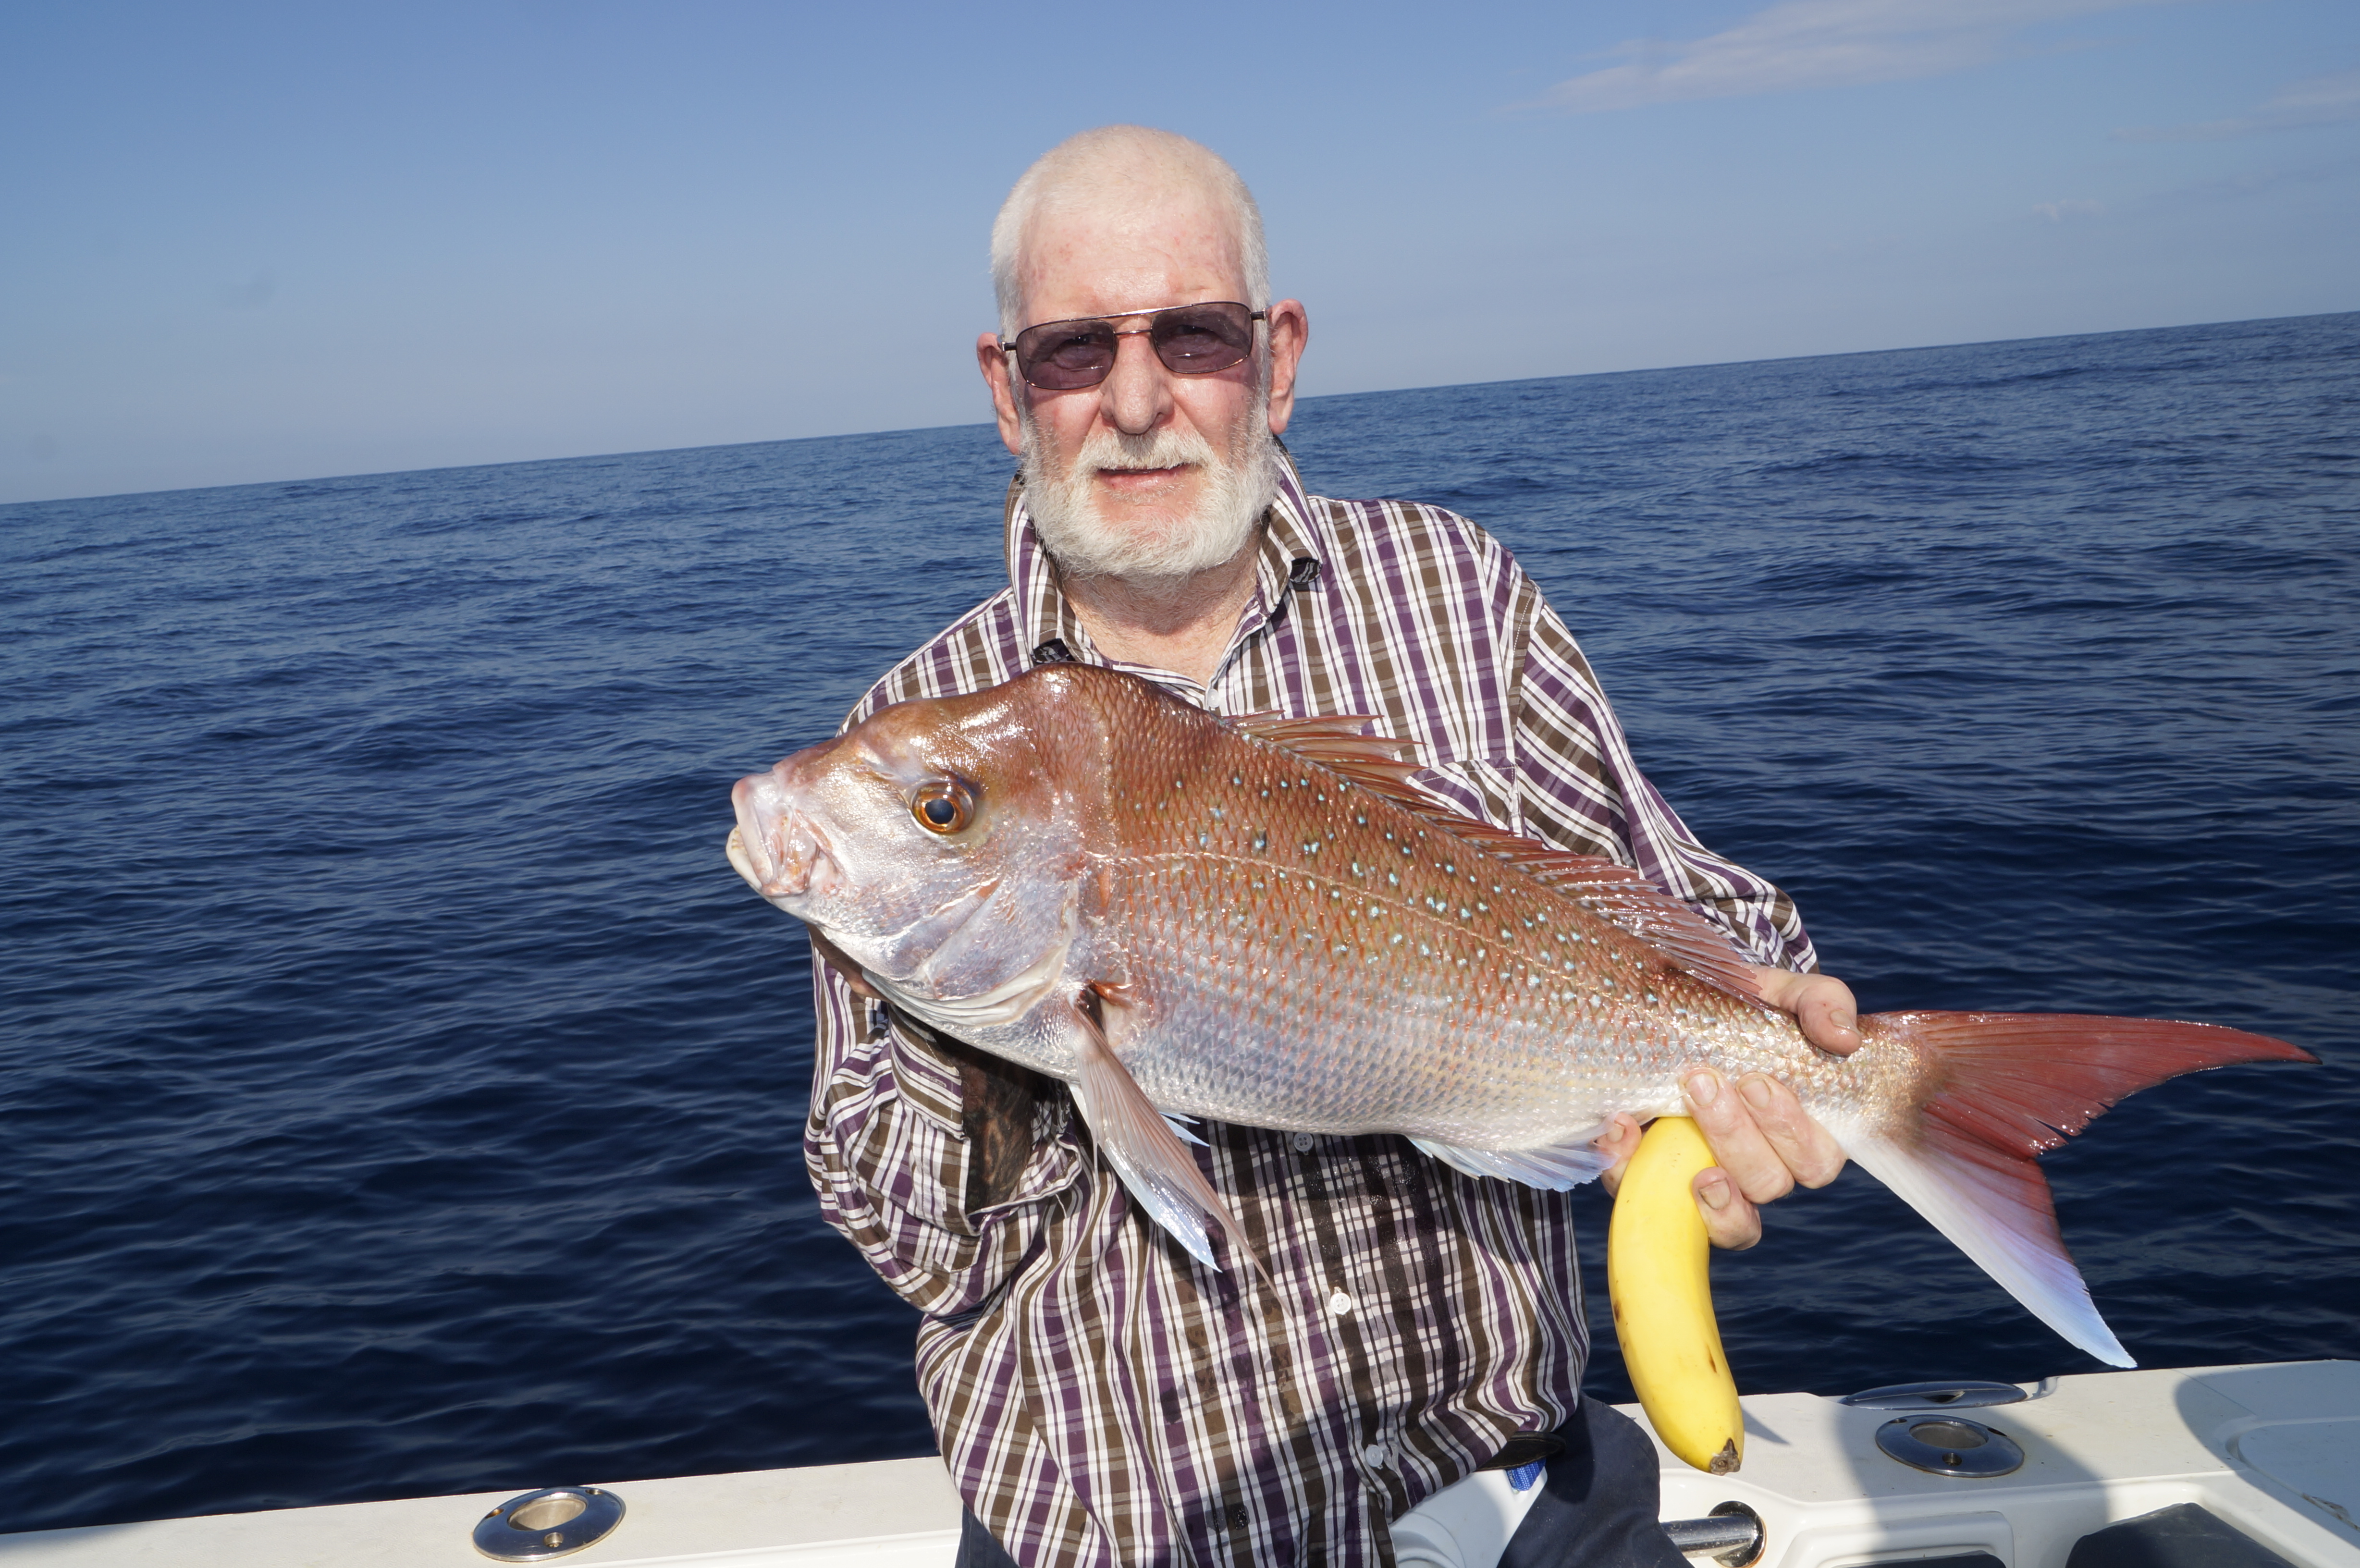 Bananas with lunch didn't stop Andy Odgers from catching cracker snapper.